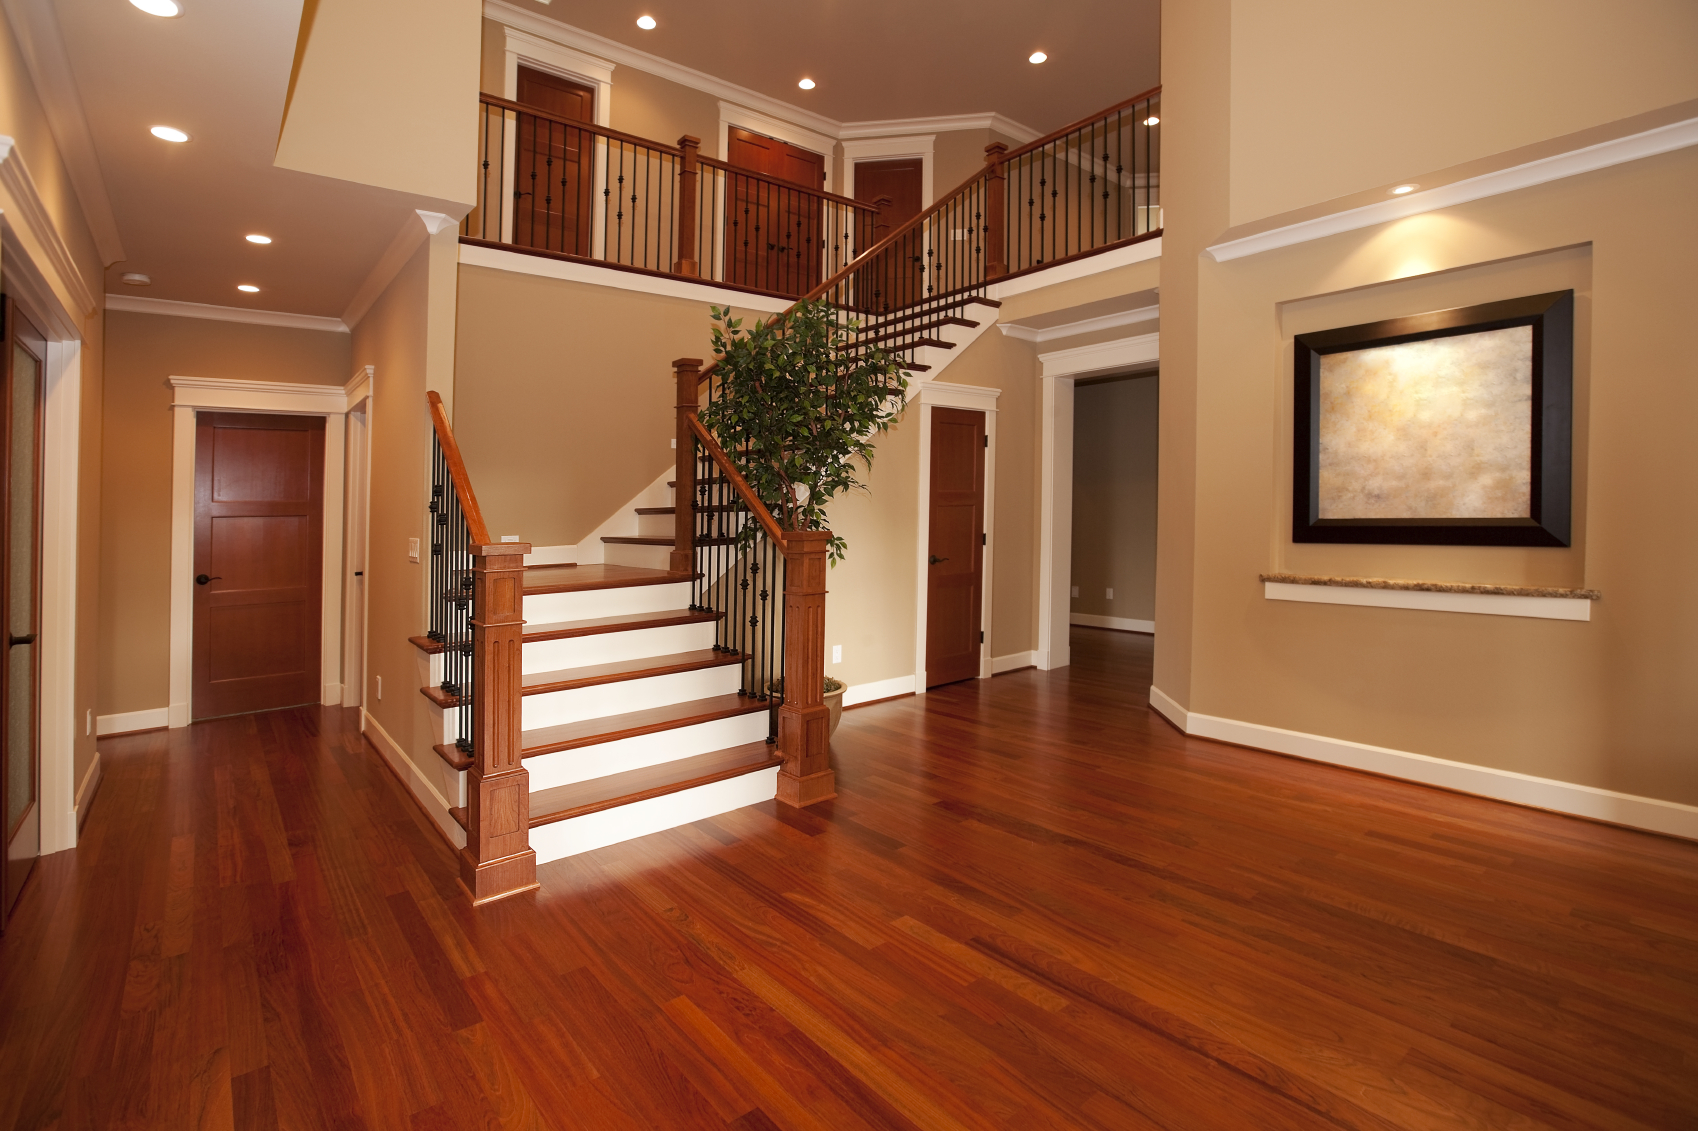 Wooden flooring laminated flooring solid wood flooring for Home flooring